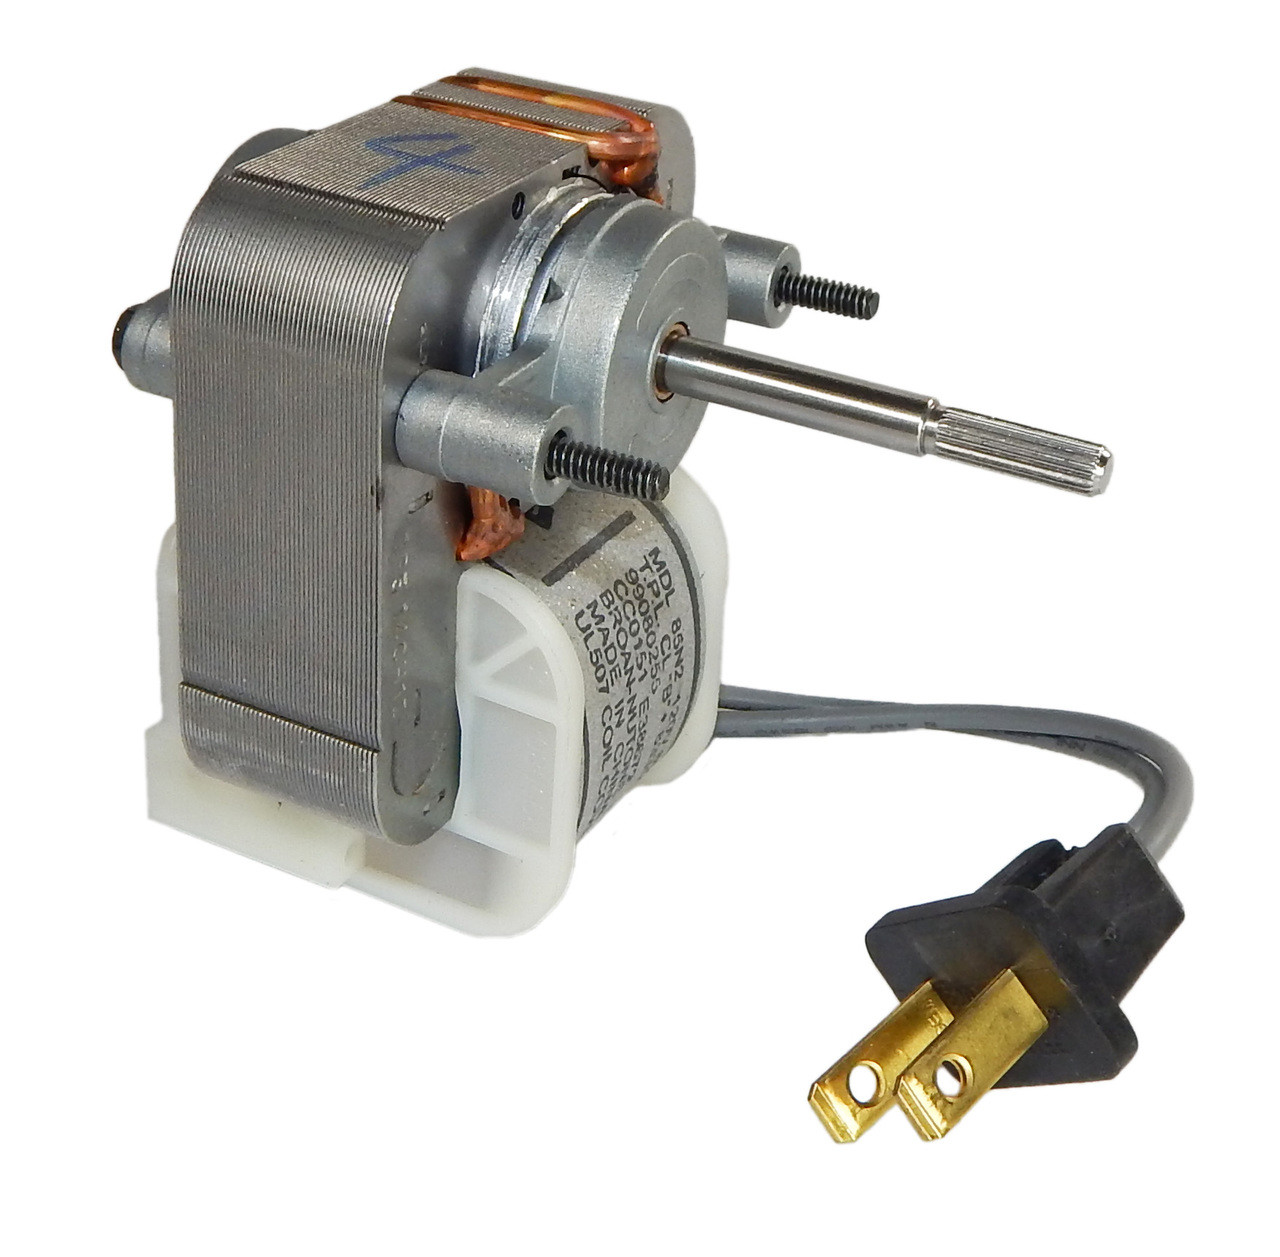 ... Replacement Bath Fan Motor # 99080255, 1.5 Amps, 1500 RPM, 120V. Image 1